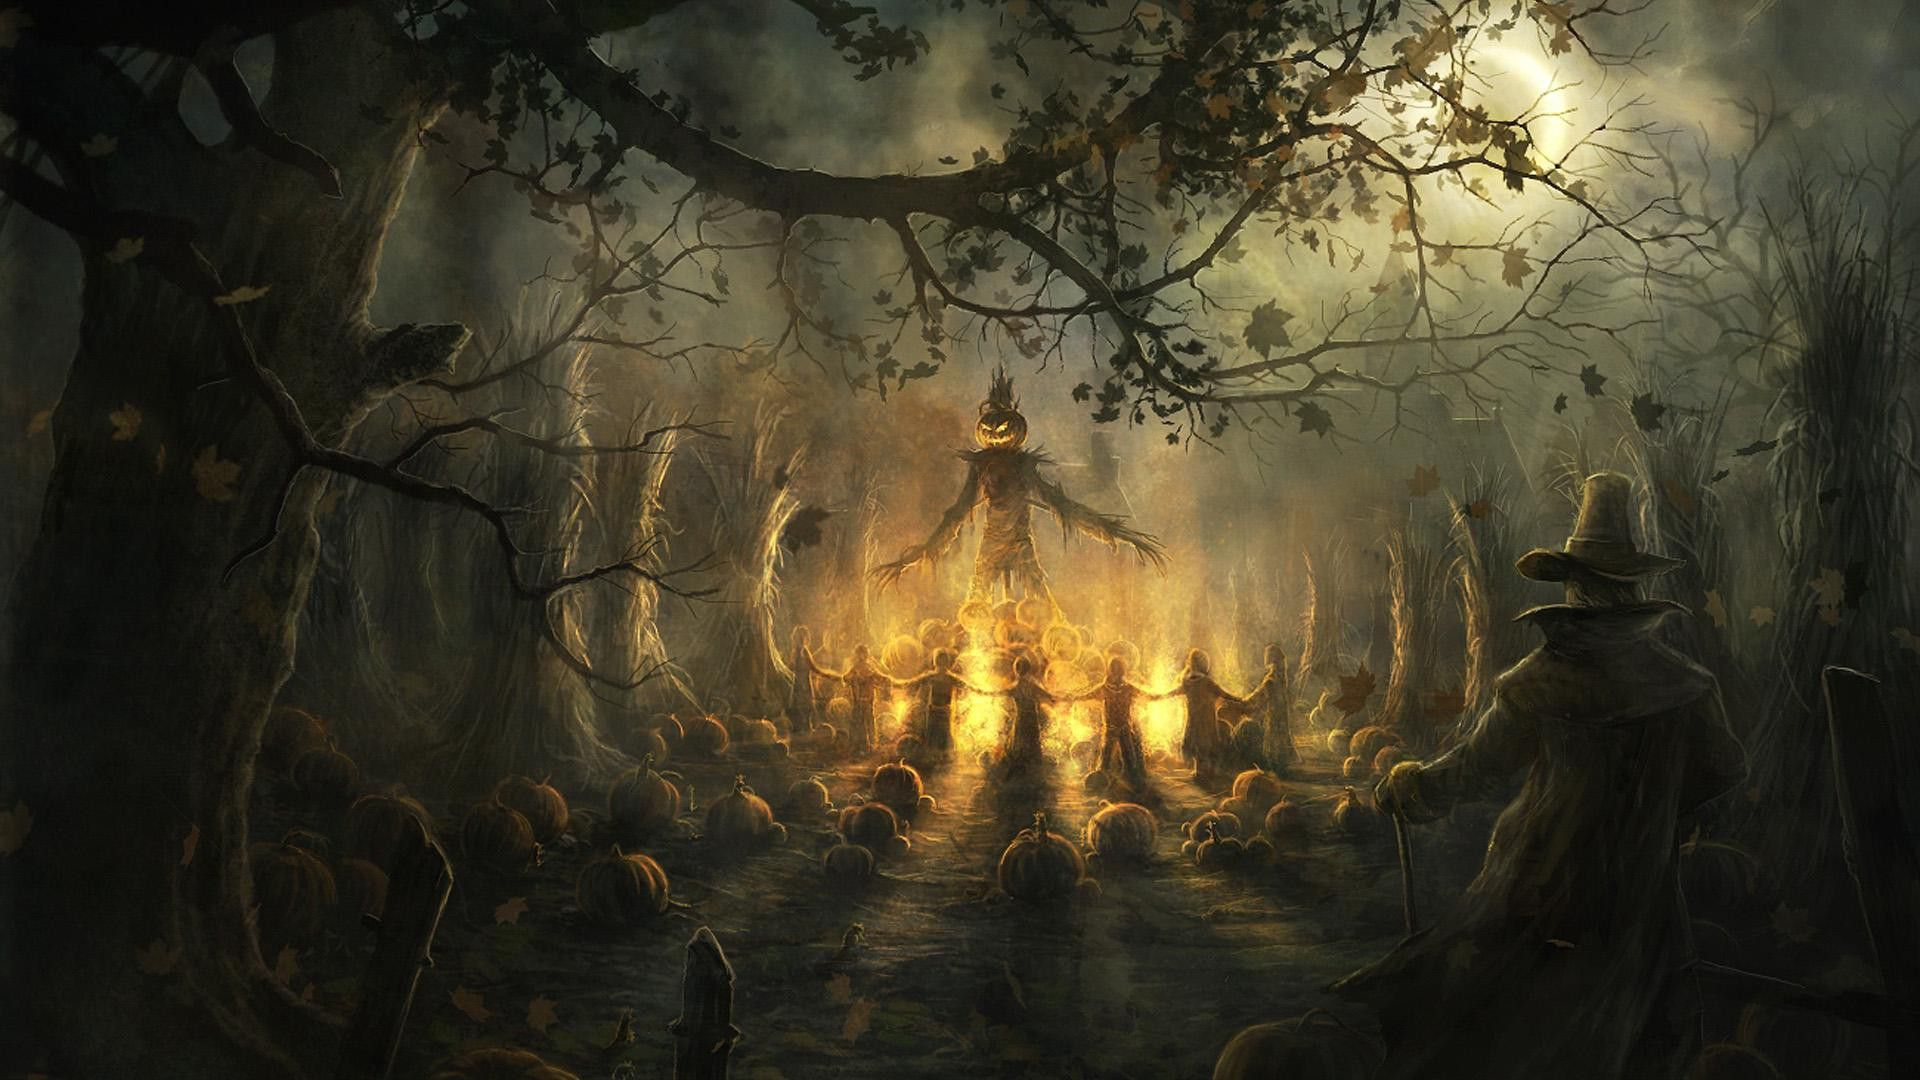 Pin On Halloween Backgrounds With Scary Images